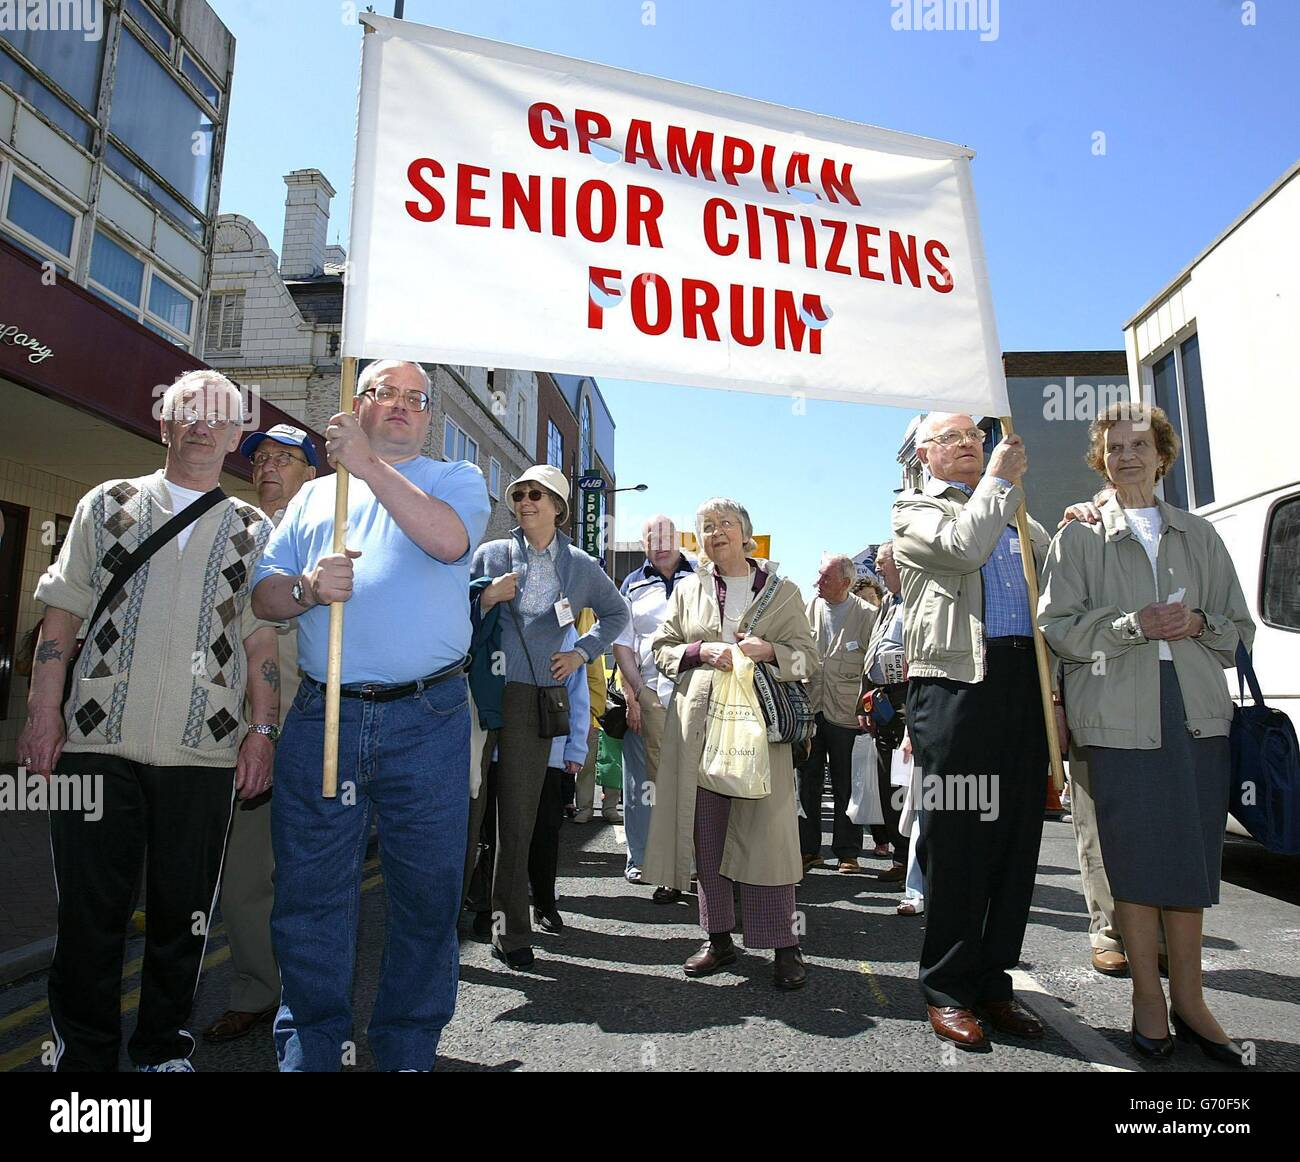 Blackpool Pensioners Protest Stock Photo